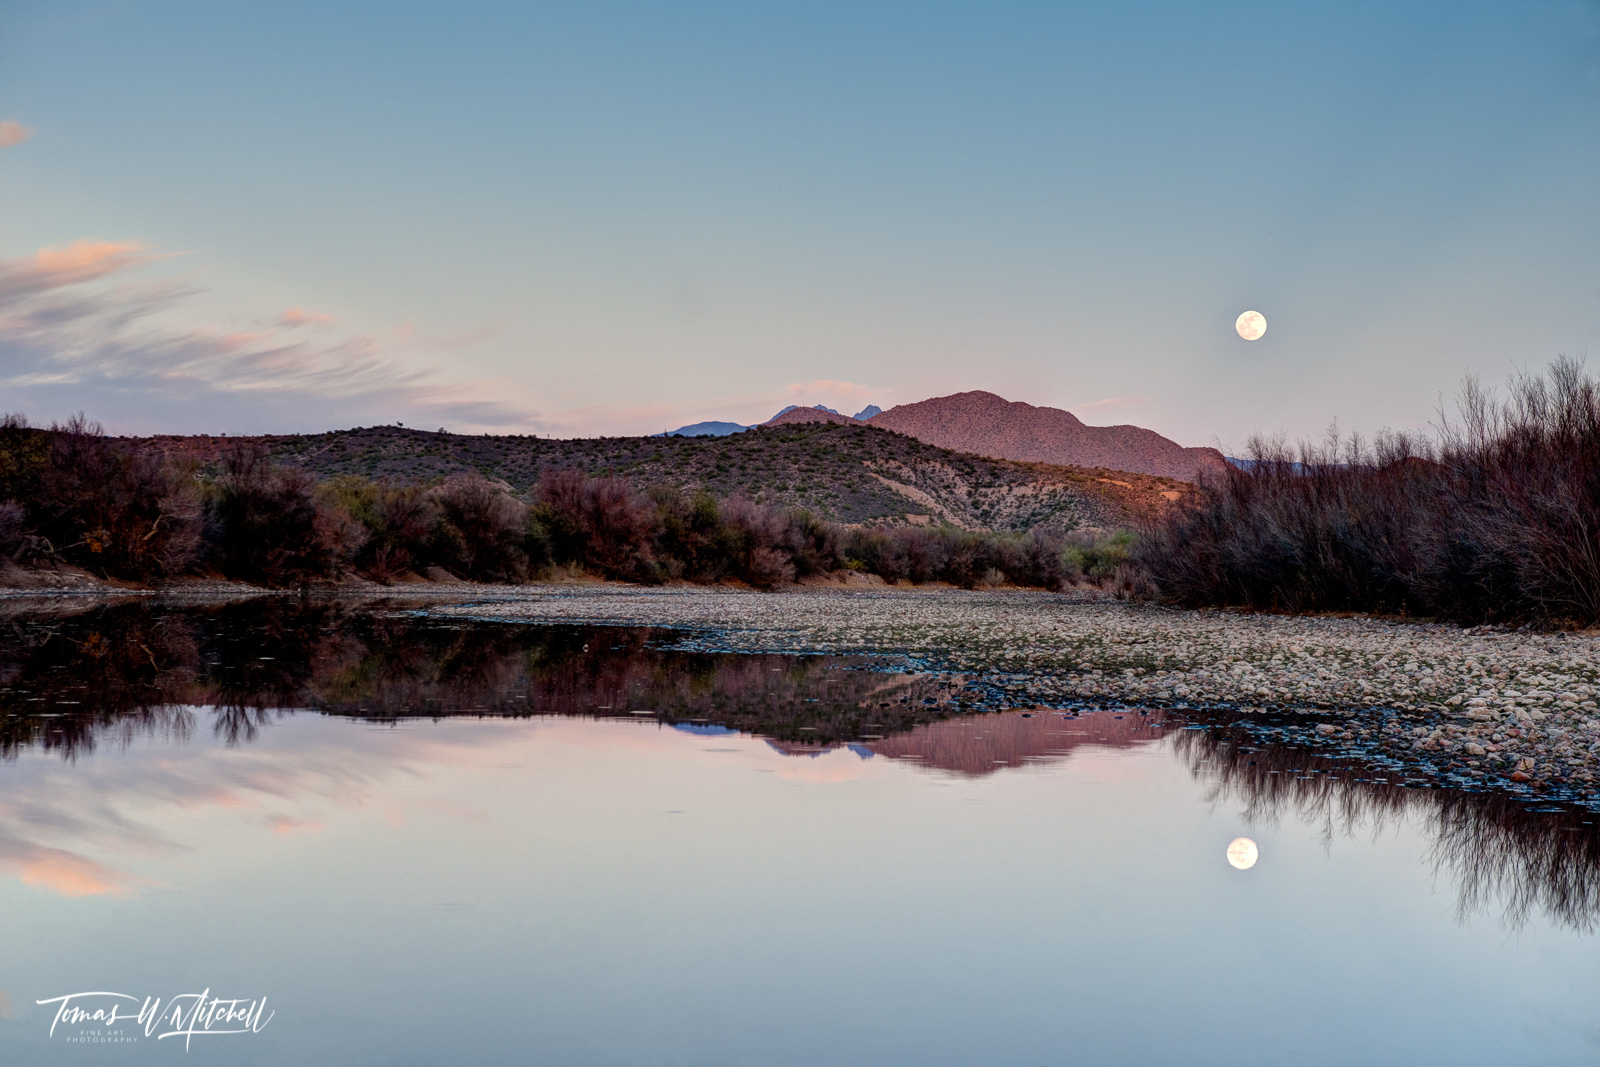 limited edition, fine art, prints, salt river, arizona, moon, light, mountain, reflection, clouds, rocks, trees, photo